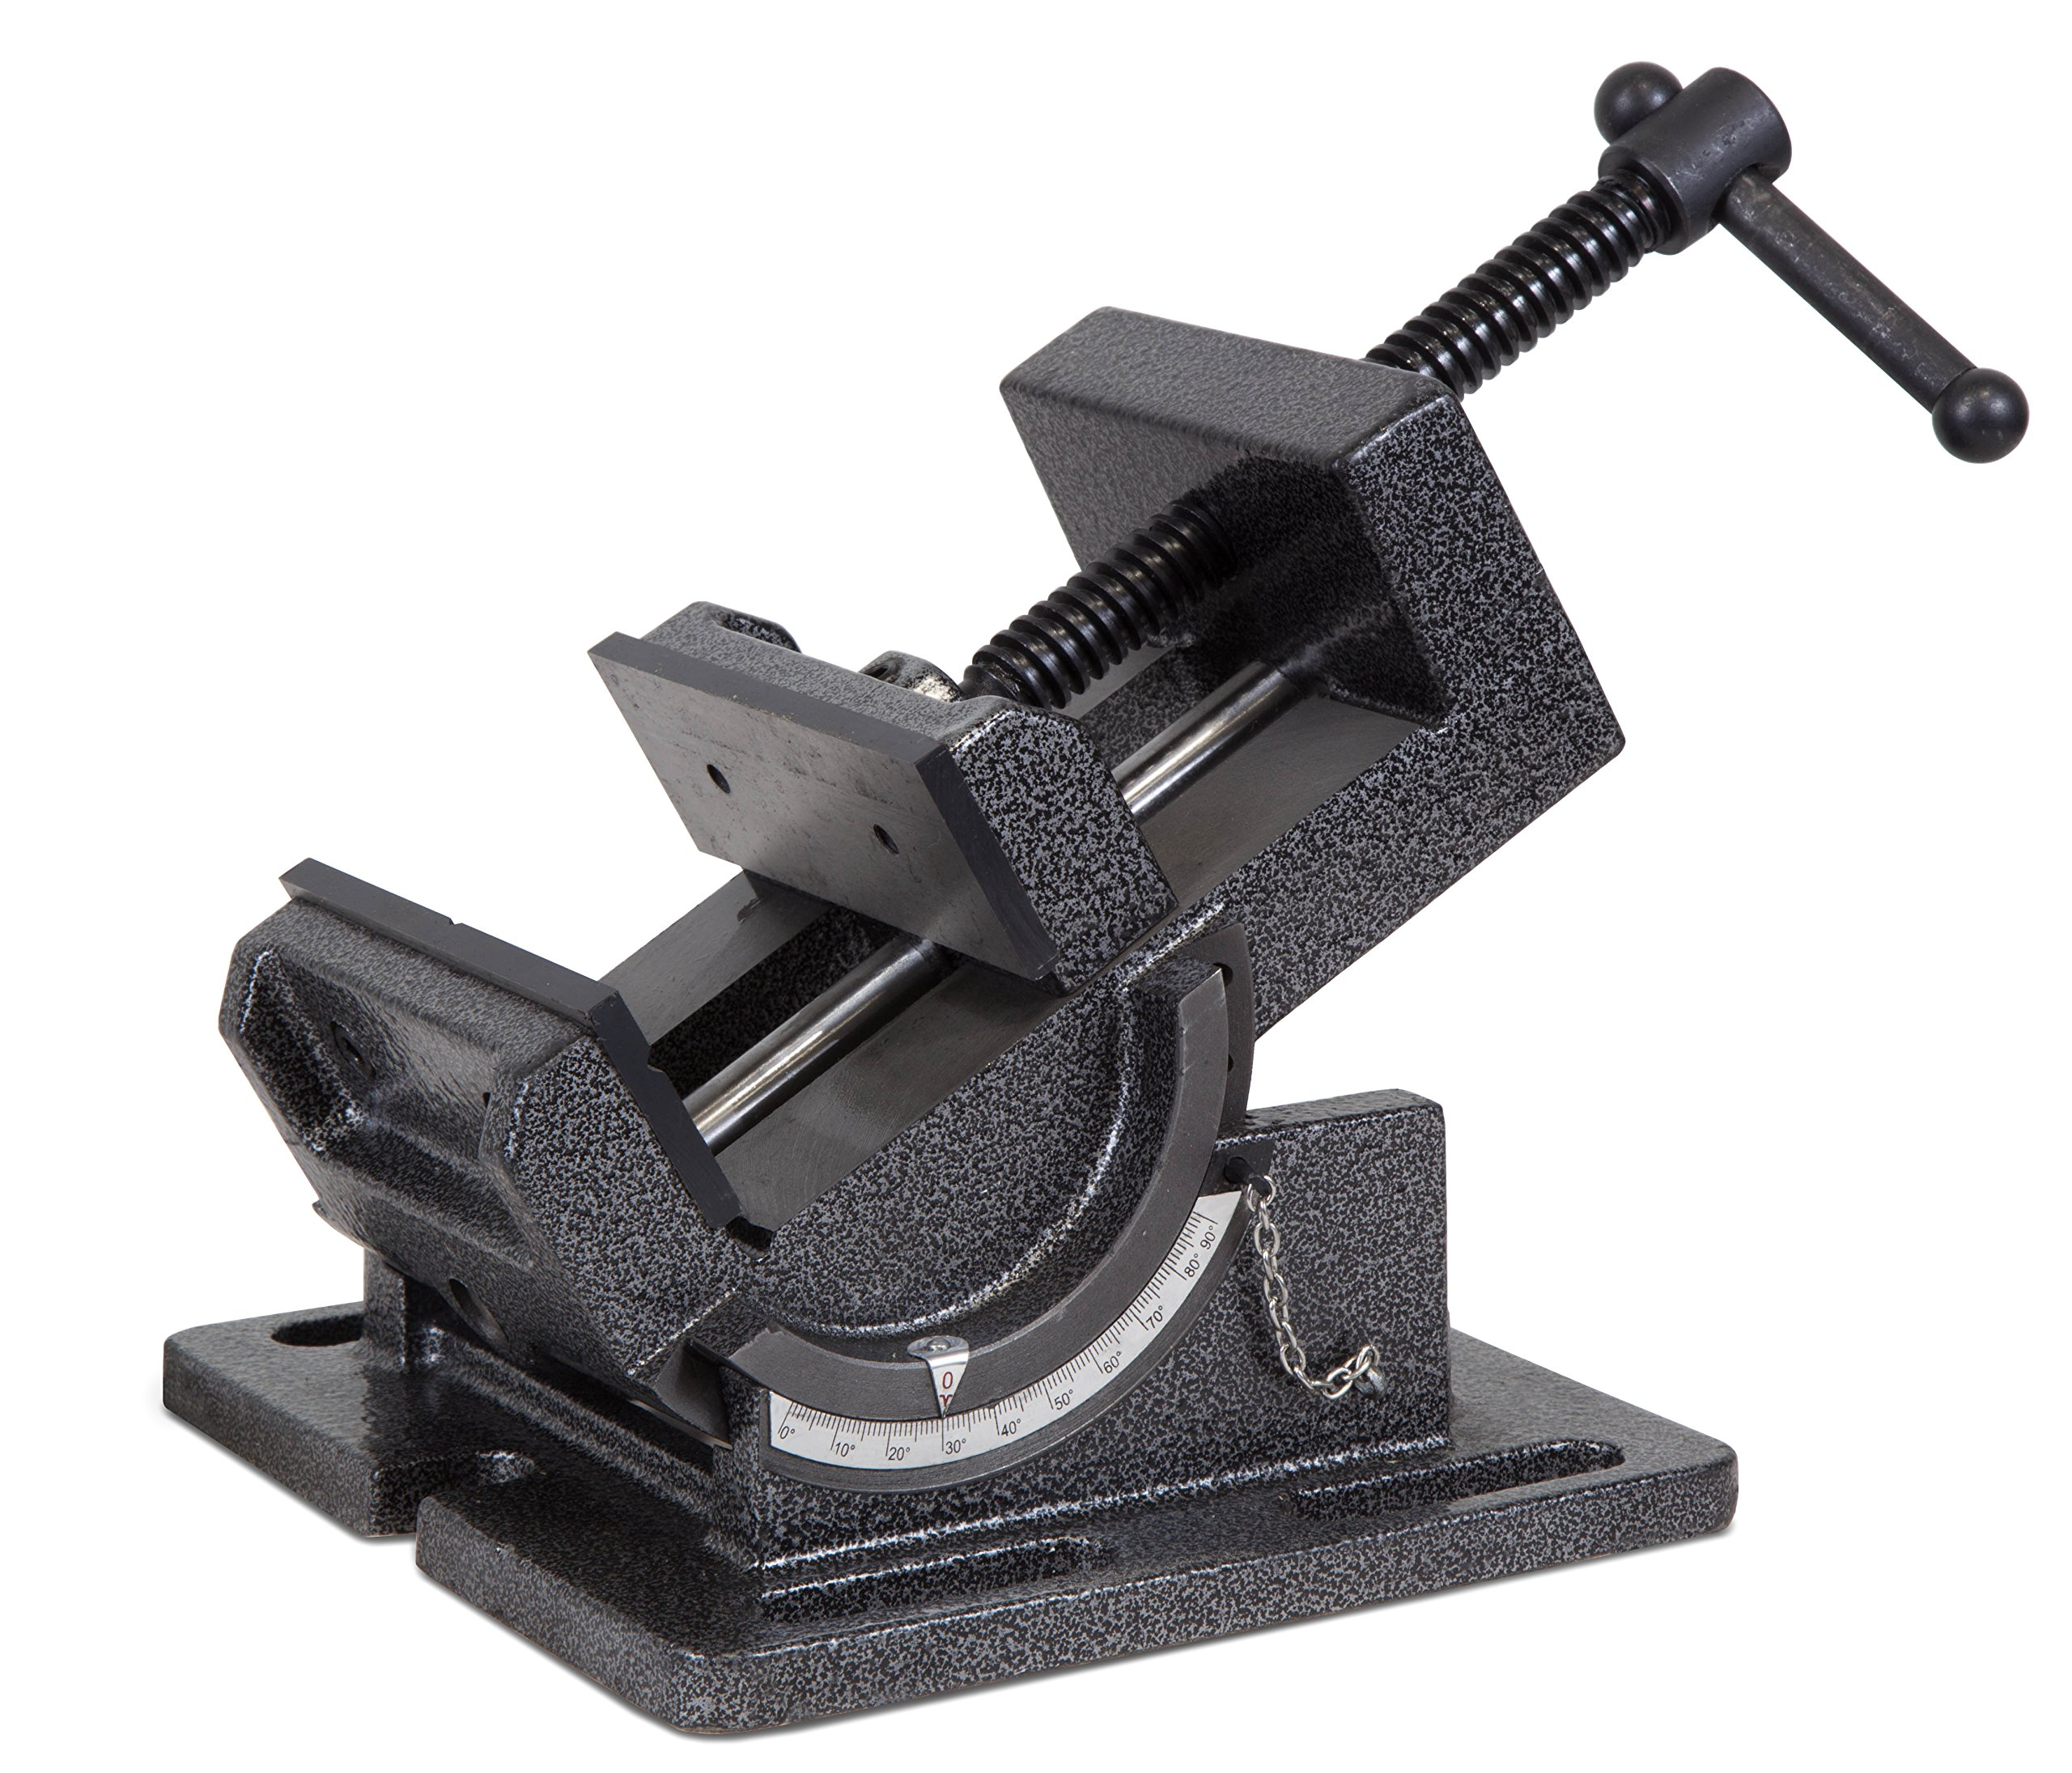 WEN 434TV 4.25-Inch Industrial Strength Benchtop and Drill Press Tilting Angle Vise by WEN